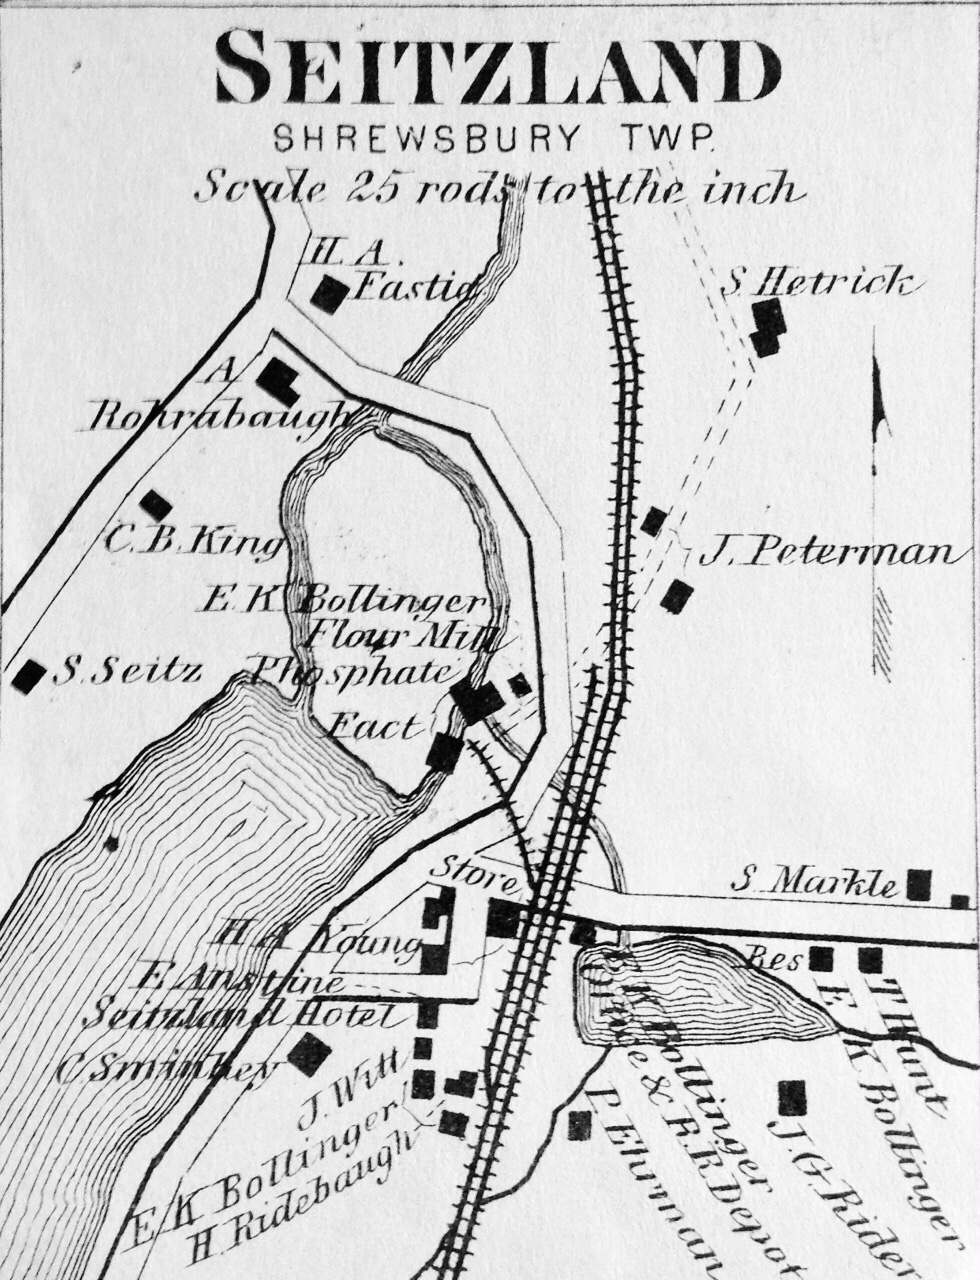 Seitzland Map (Old B&W) 2-1-17.jpg